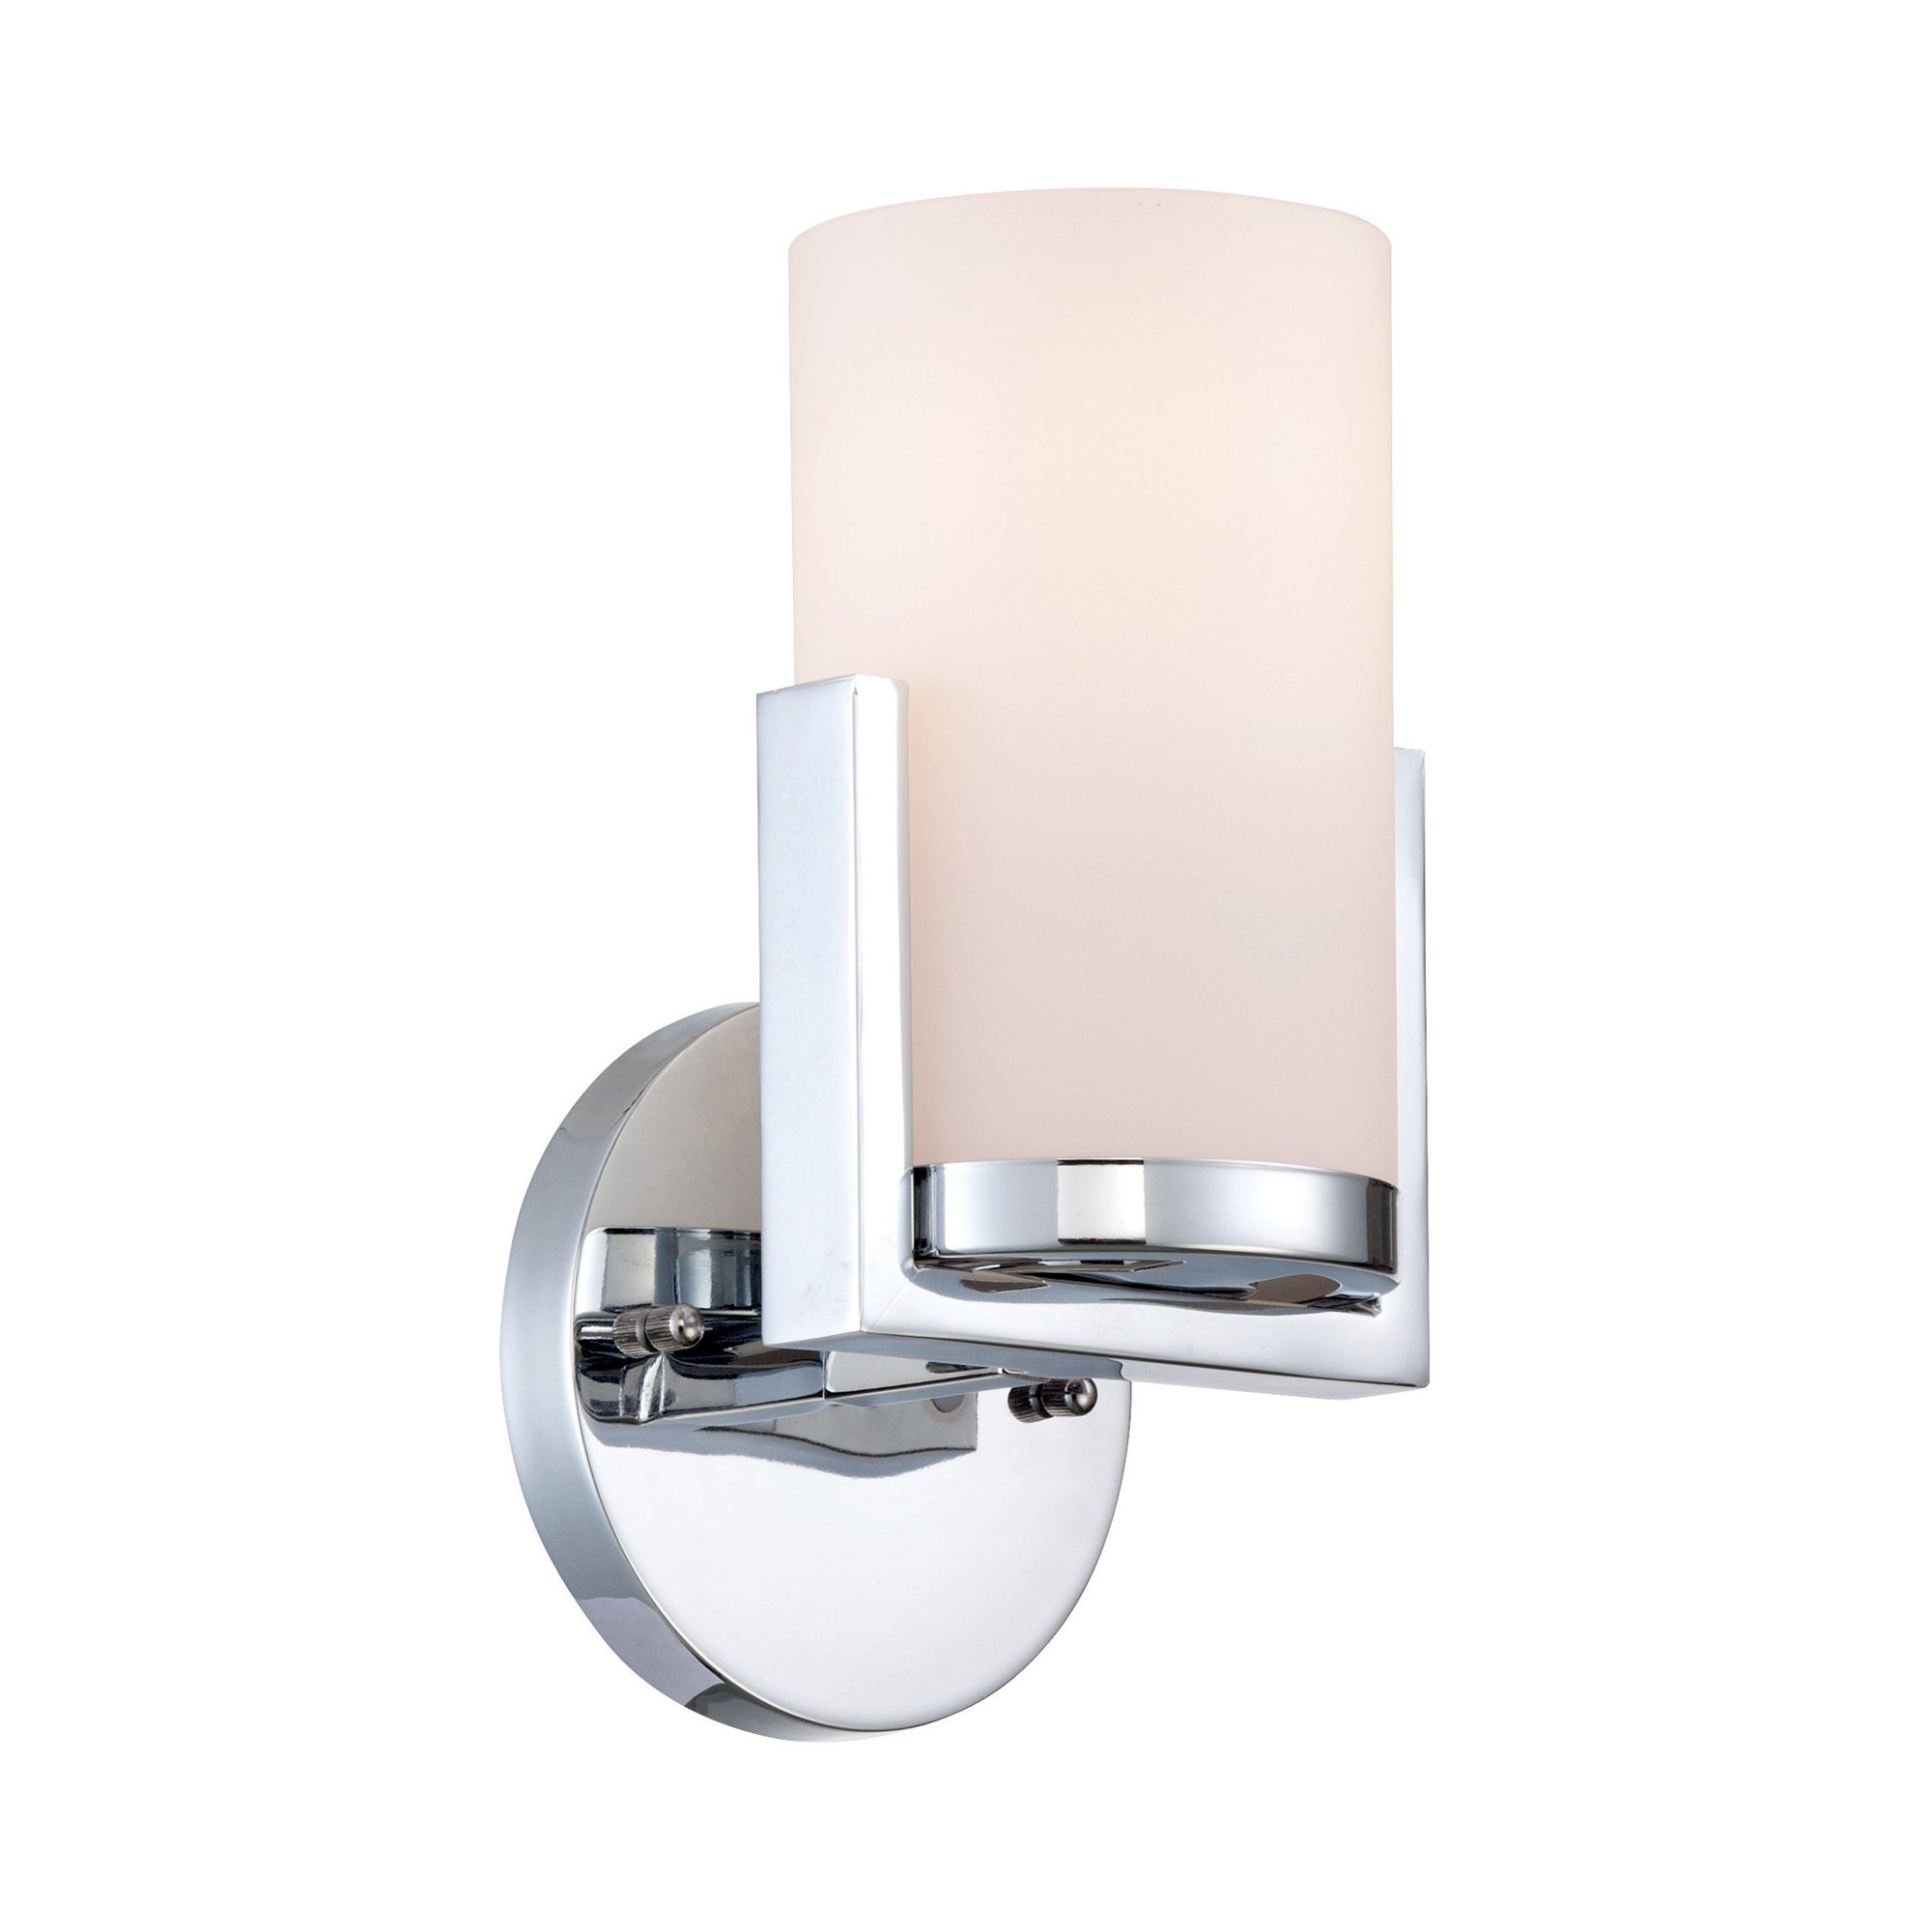 Caesarea Wall Lamp - Chrome - Lite Source, Grey/Frosted